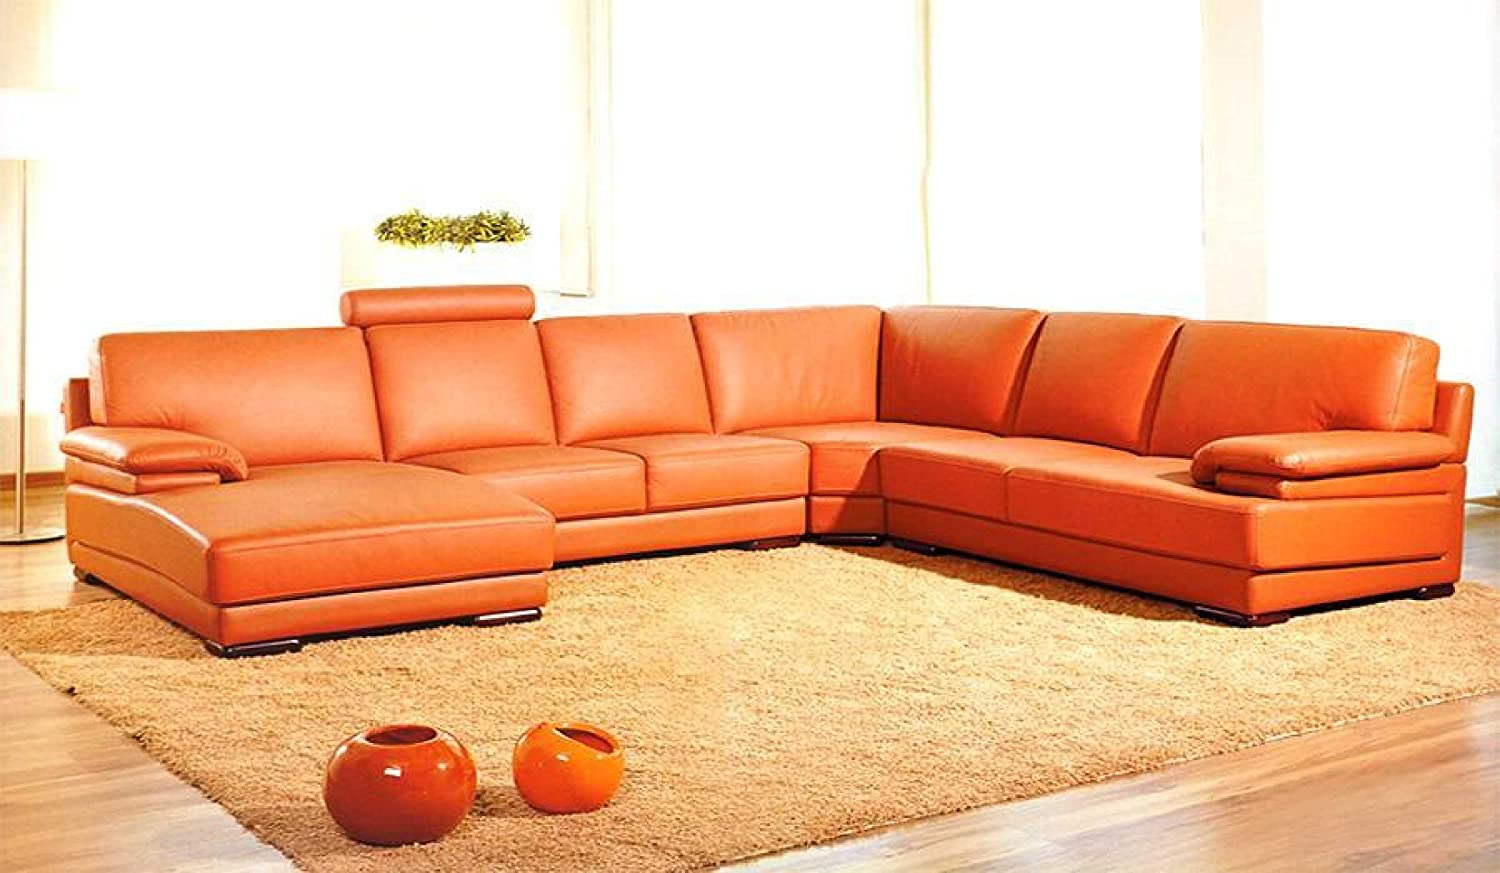 orange living room furniture. Amazon.com: 2227 Orange Leather Contemporary Sectional Sofa With Chaise: Kitchen \u0026 Dining Living Room Furniture S